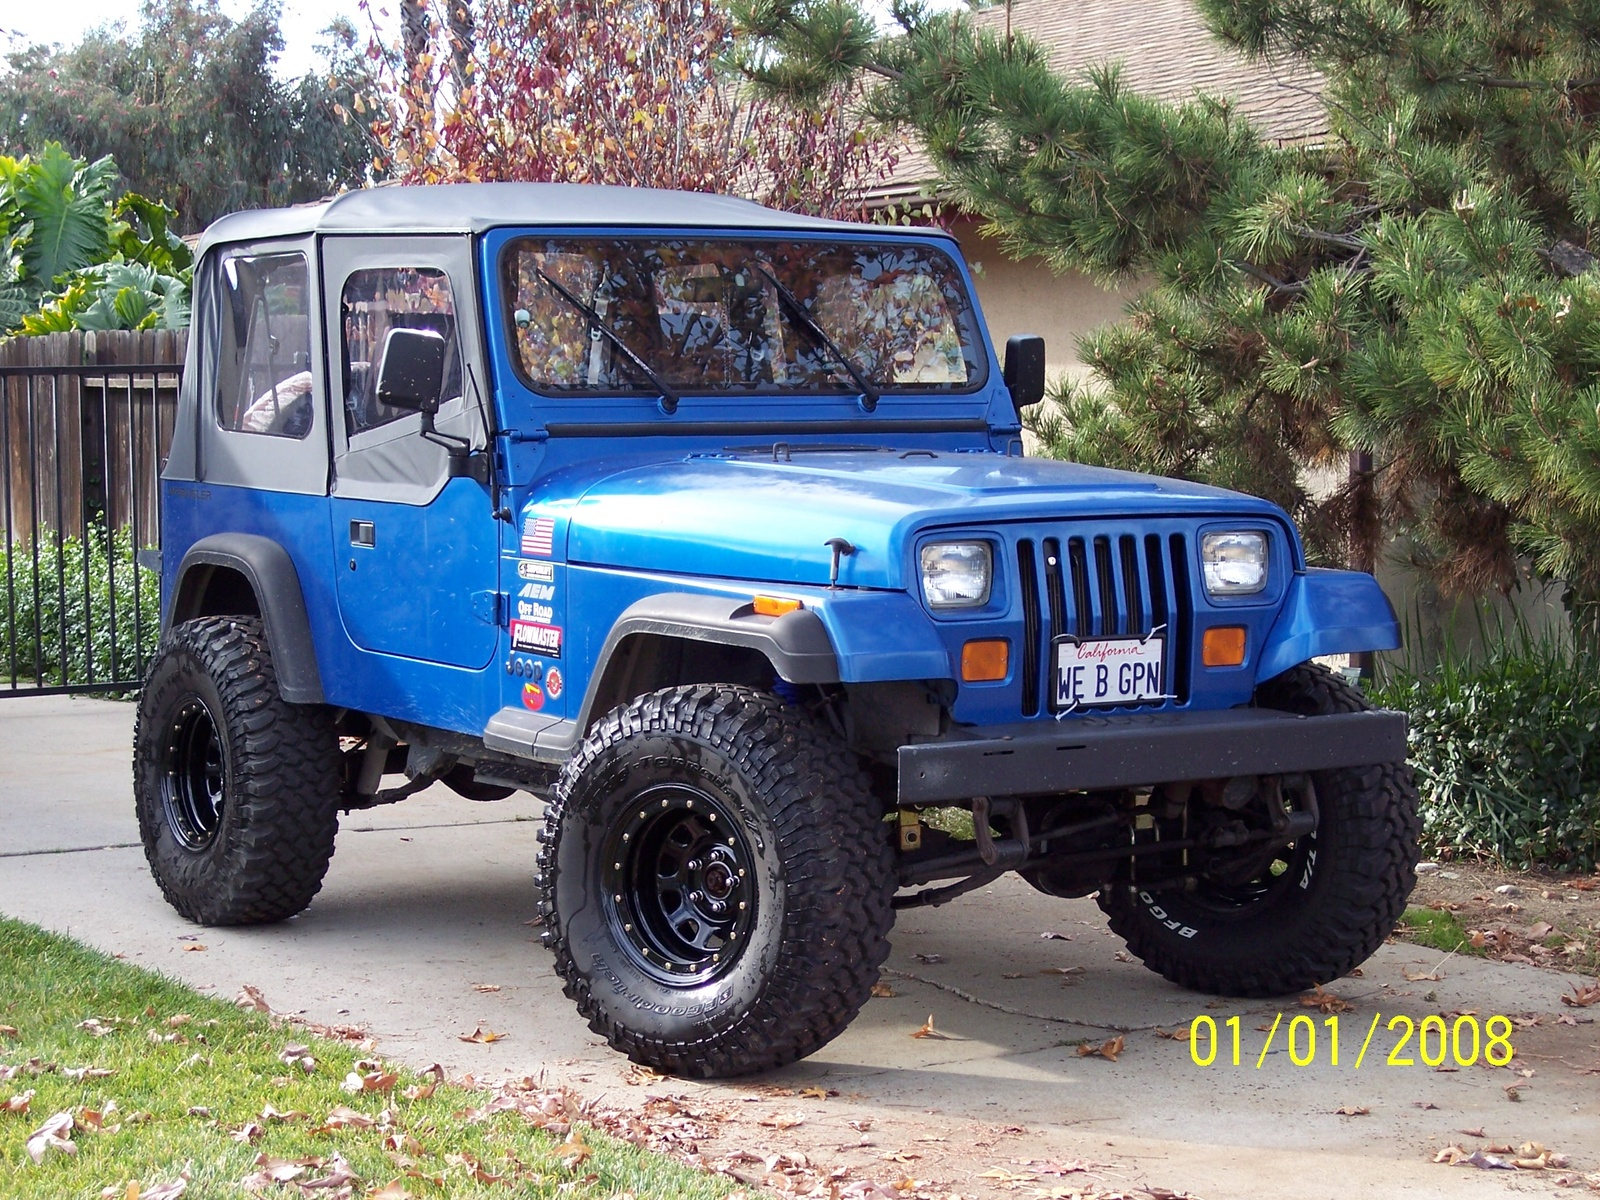 1993 jeep wrangler information and photos zombiedrive. Black Bedroom Furniture Sets. Home Design Ideas